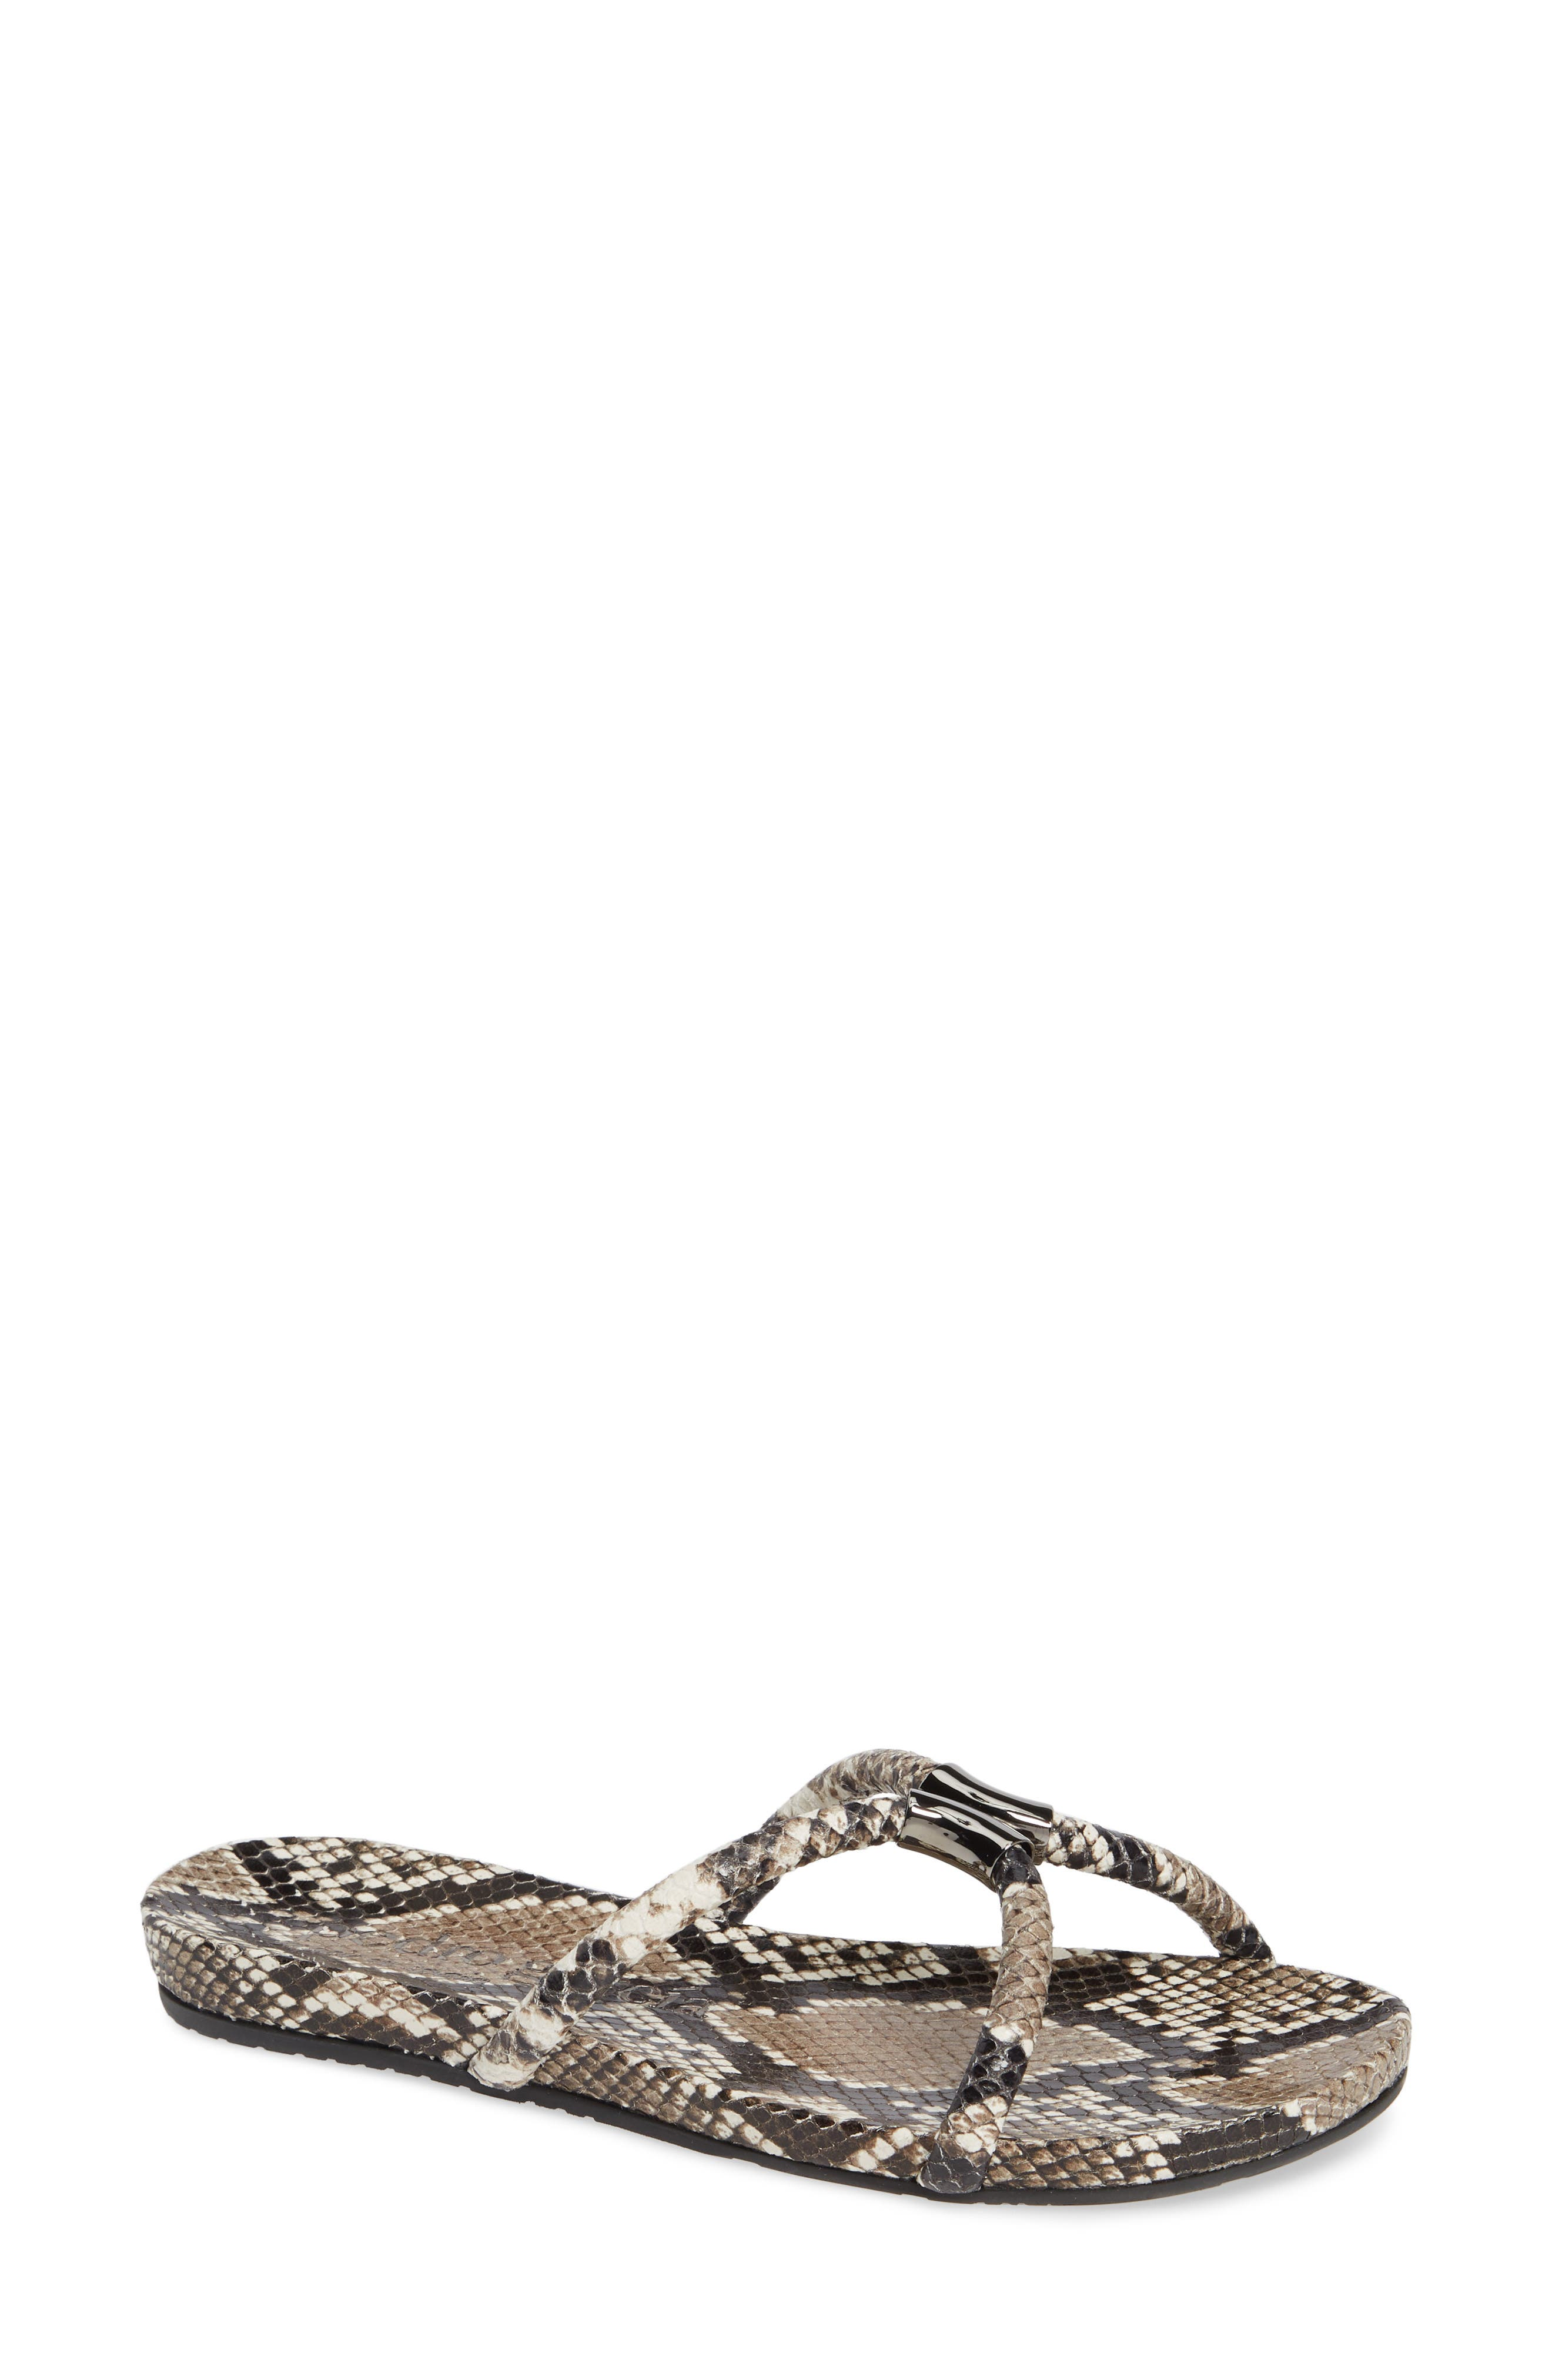 PEDRO GARCIA Geminy Slide Sandal, Main, color, NATURAL PYTHON